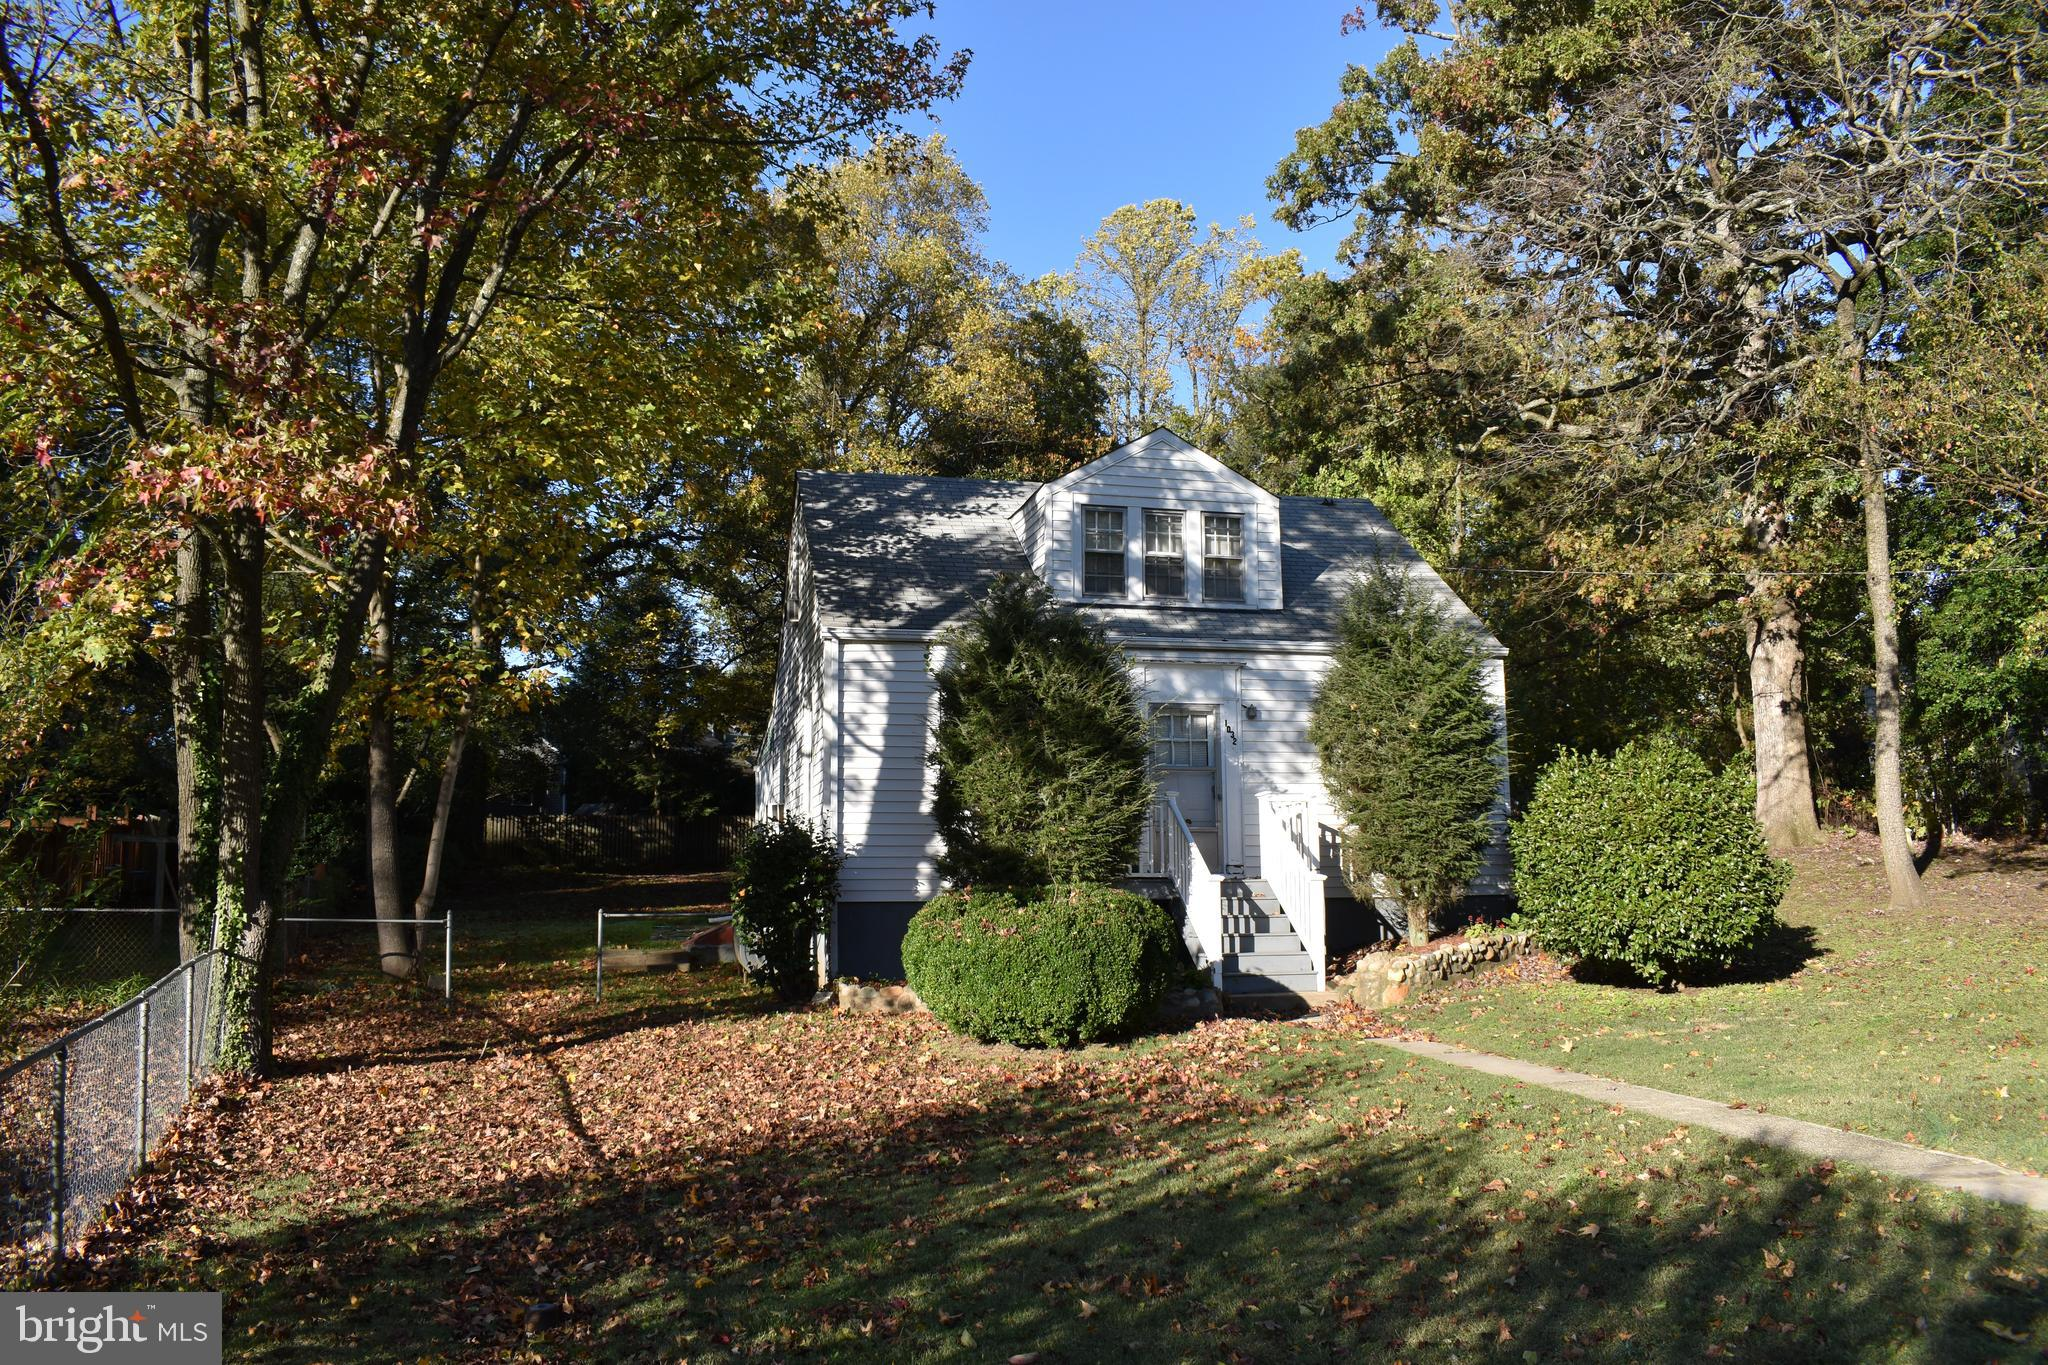 Call LA for Details! Great Lot ( 15,140 SF)!  3BR, 2BA, Hardwood Floors, Just waiting for the Buyer